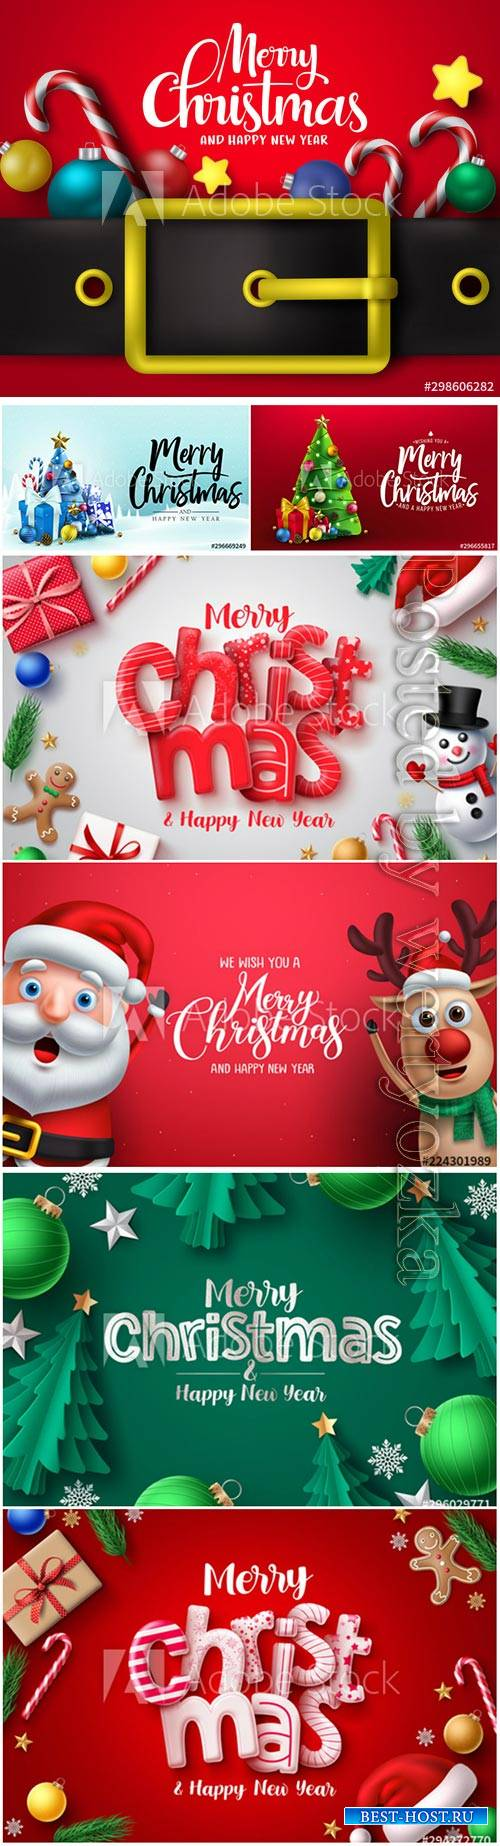 Merry christmas 3d realistic typography in red empty space for text